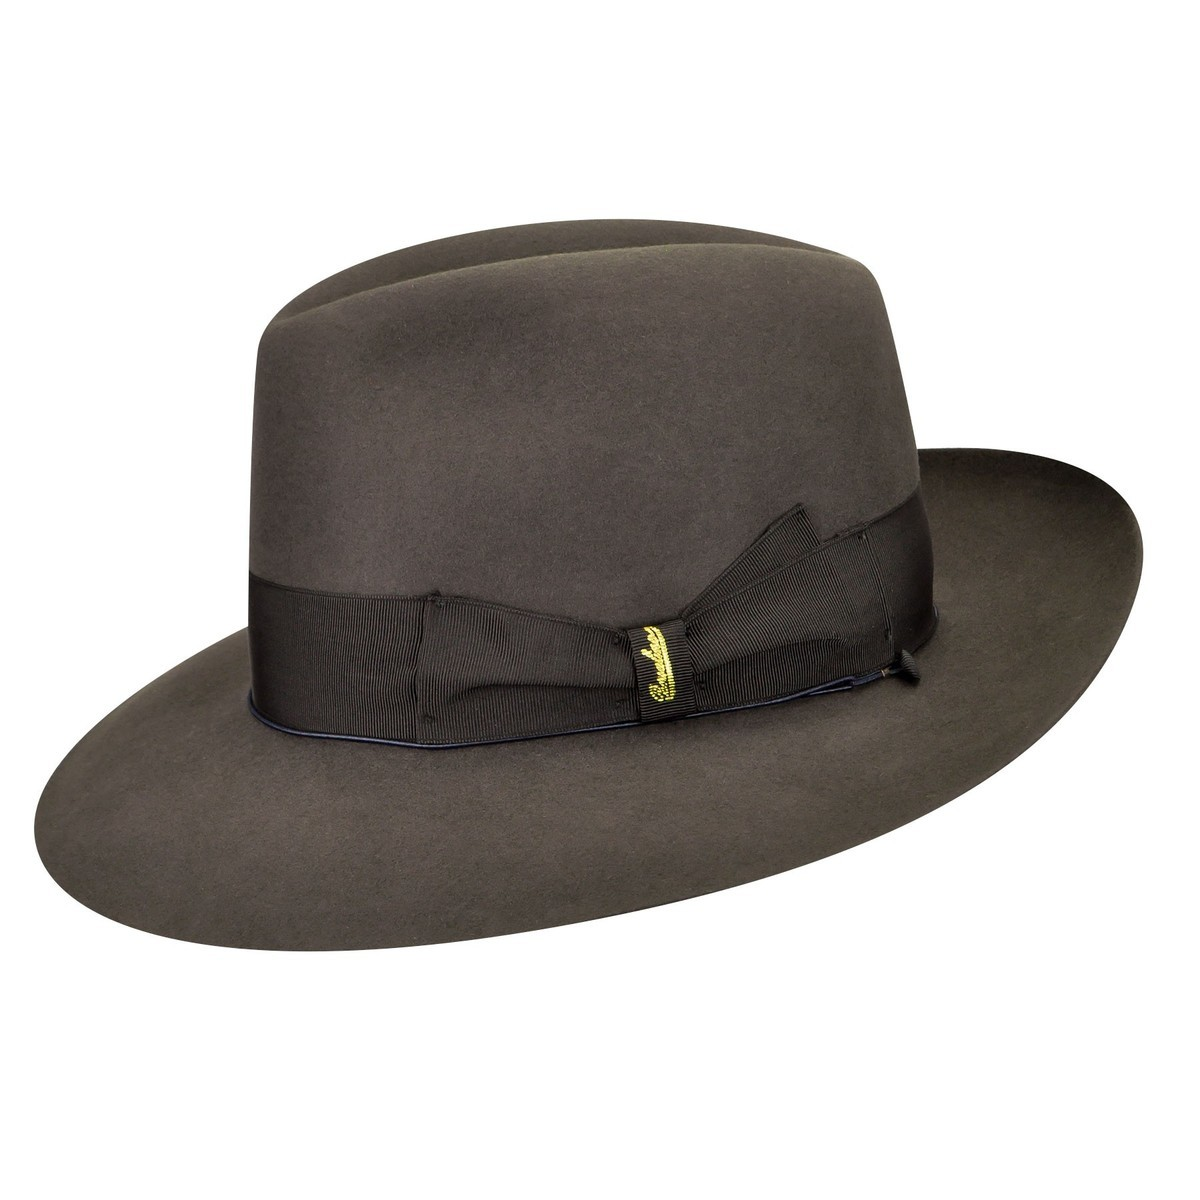 Borsalino 111147 Qualita Superiore Fur Felt Fedora Brown Grey フェドラハット 帽子 Brown Grey